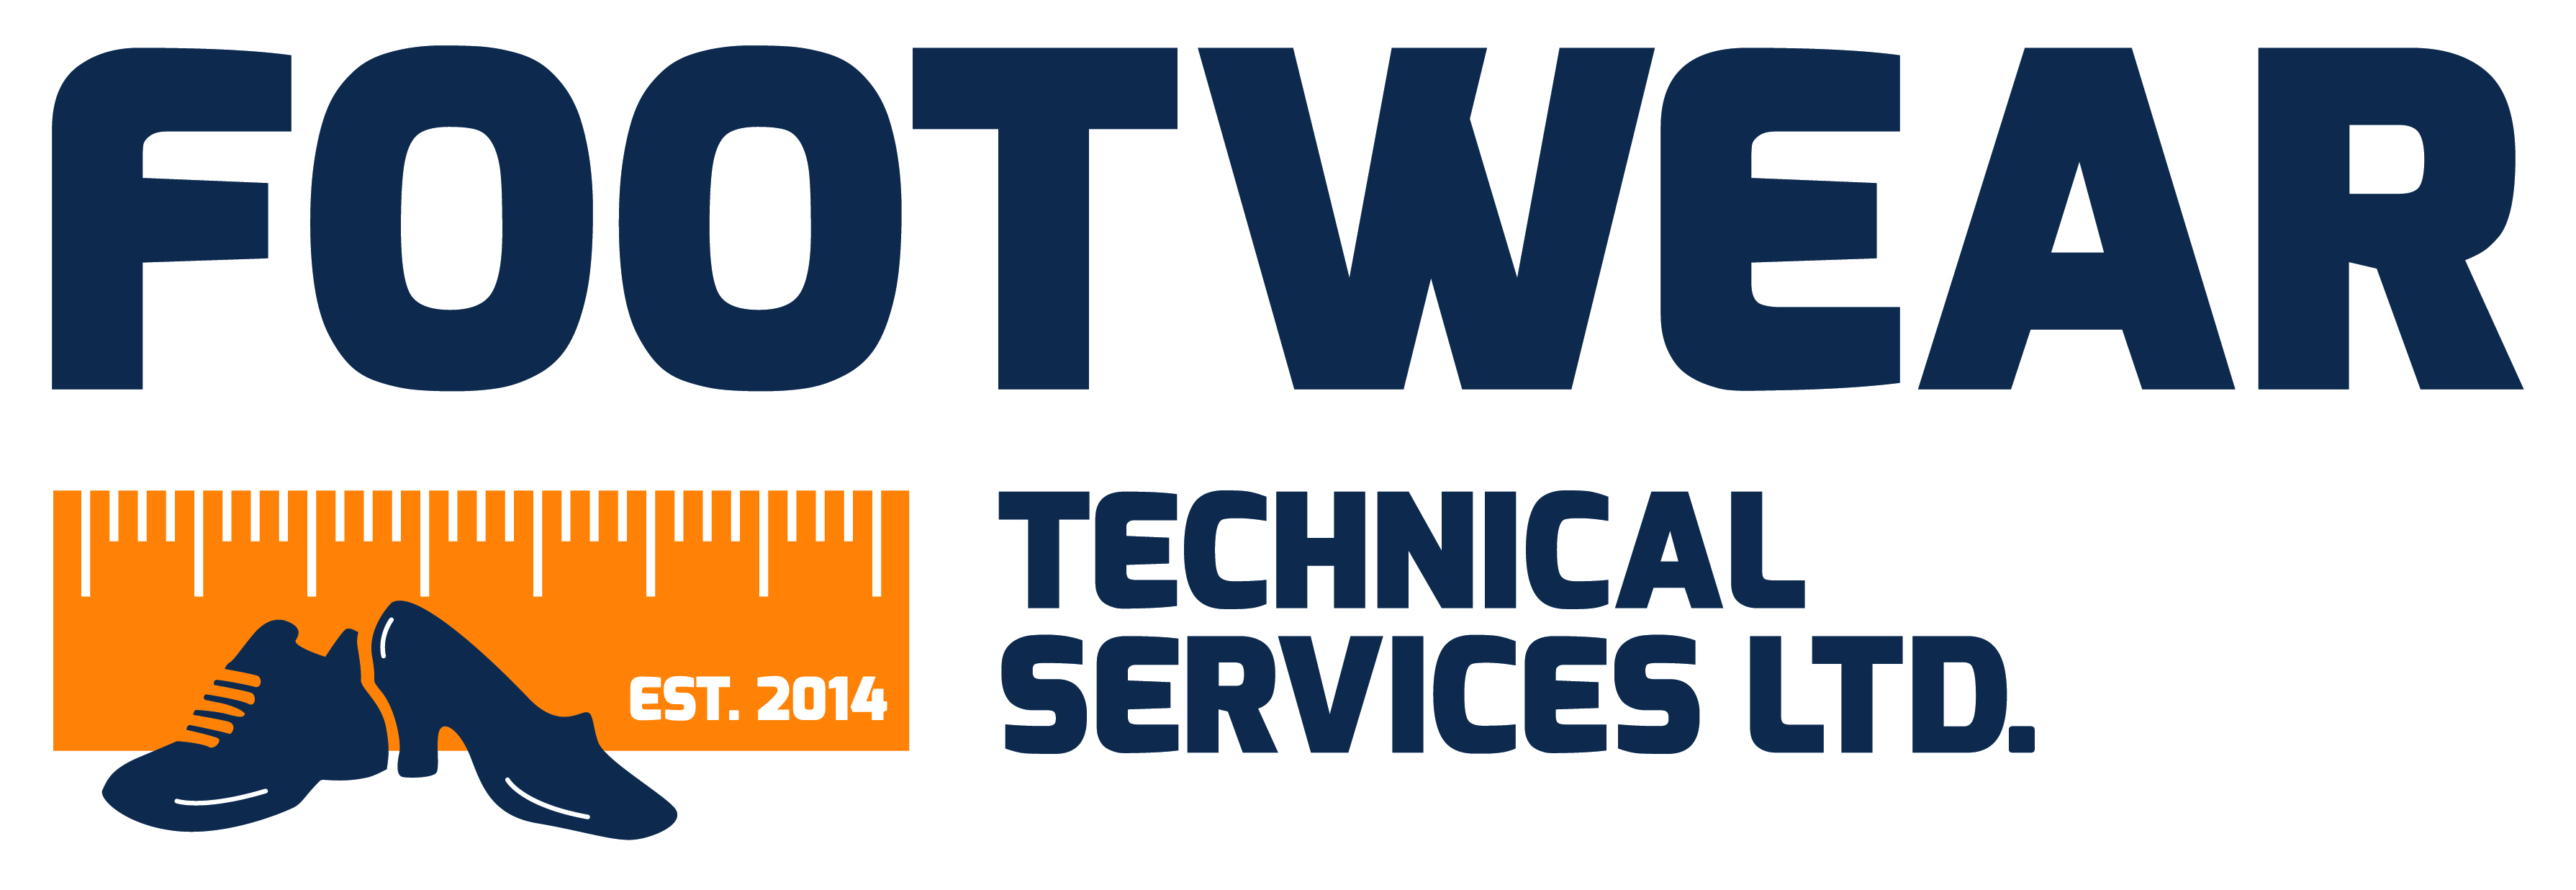 Footwear Technical Services Ltd